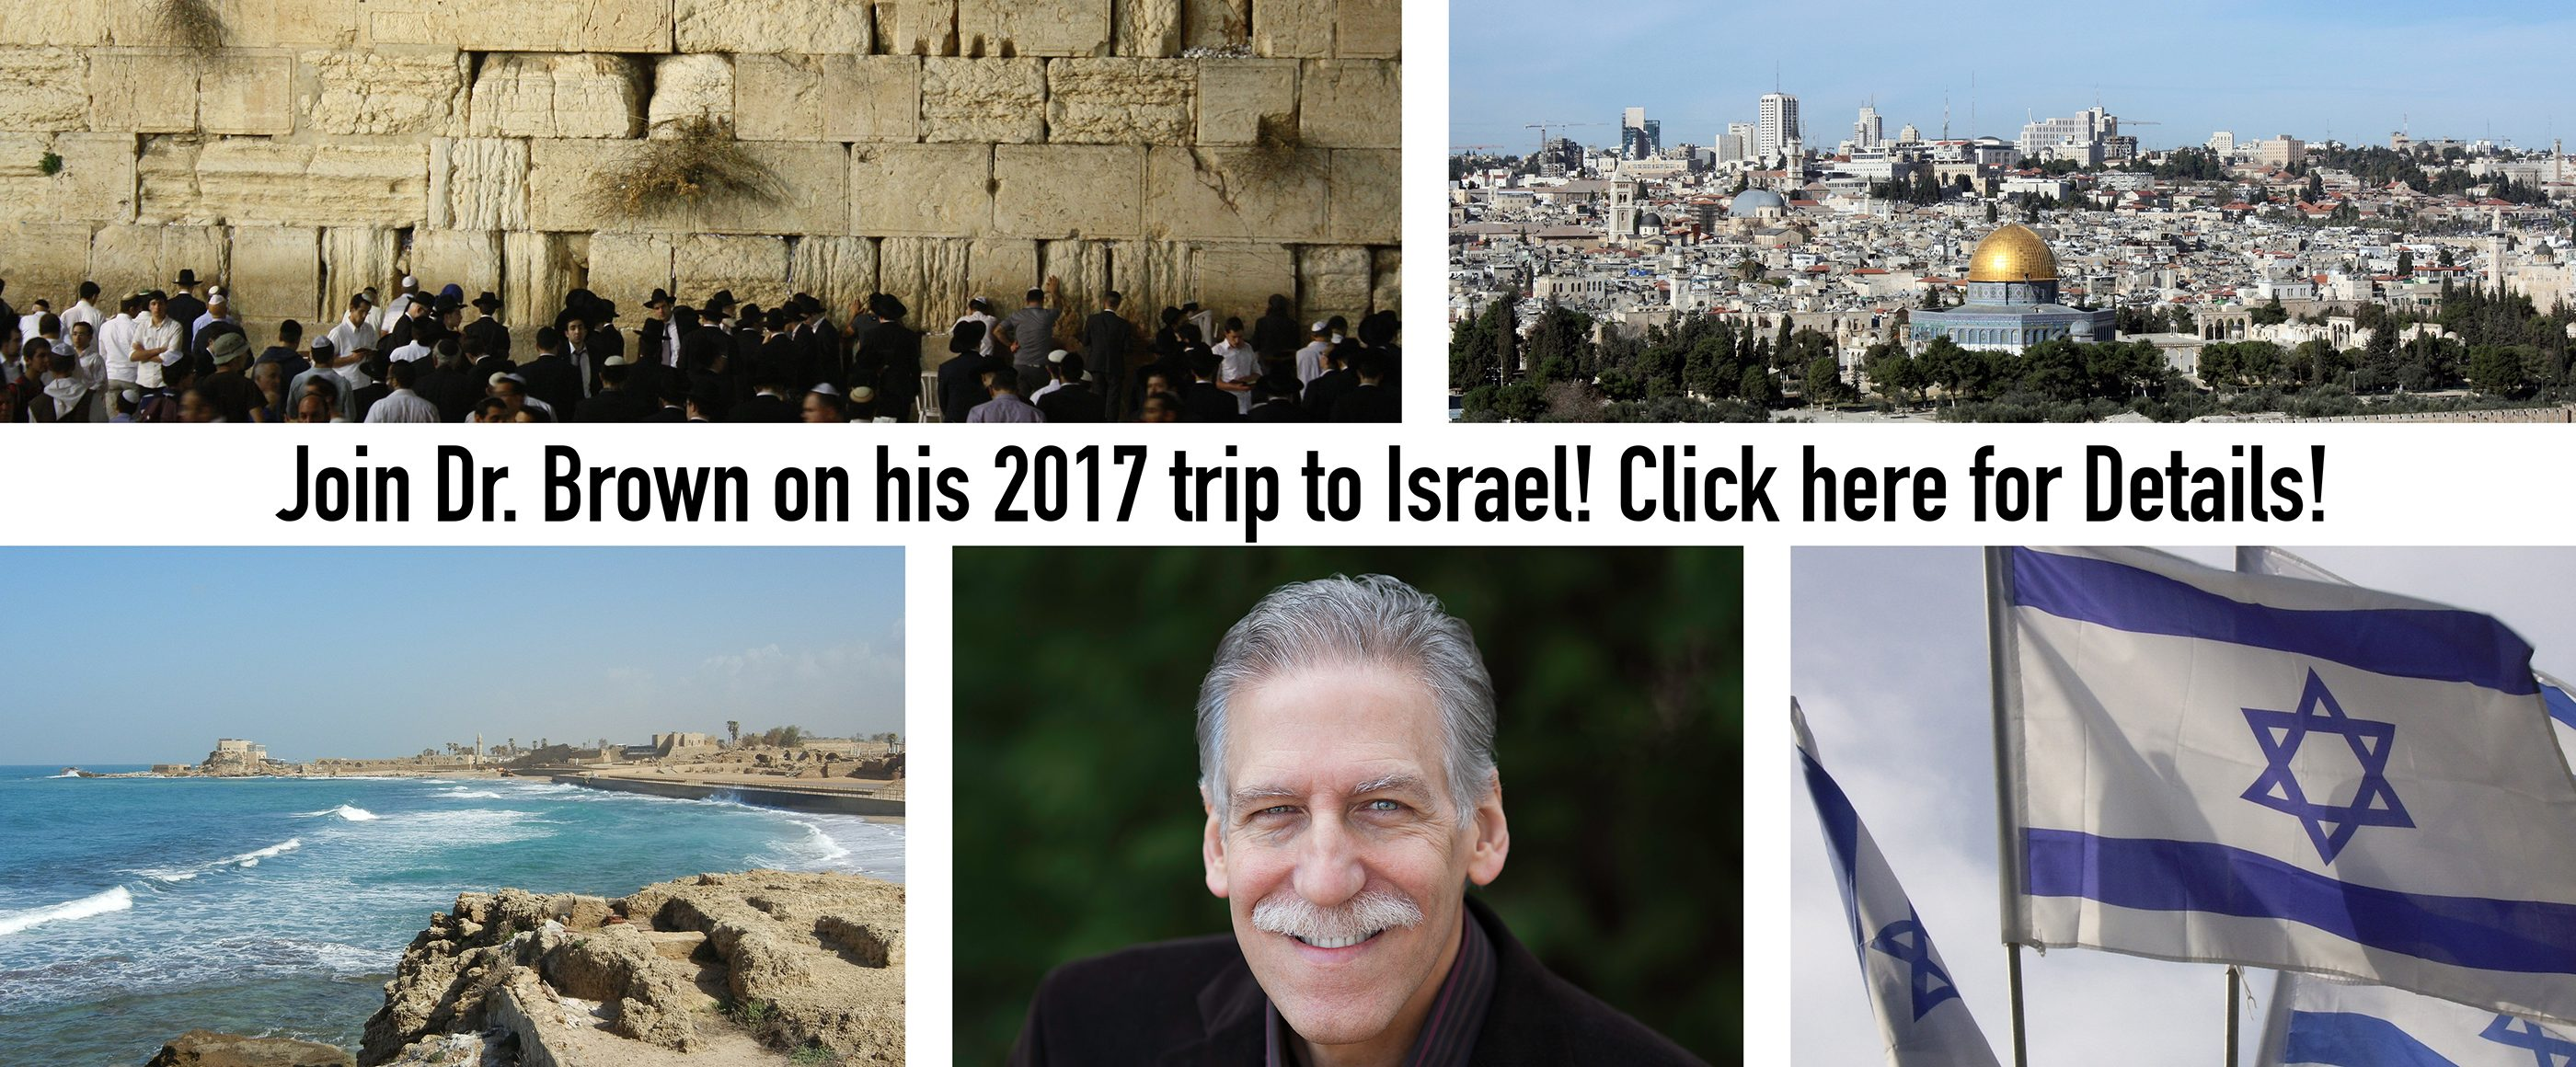 Join Dr. Brown on his 2017 Trip to Israel!